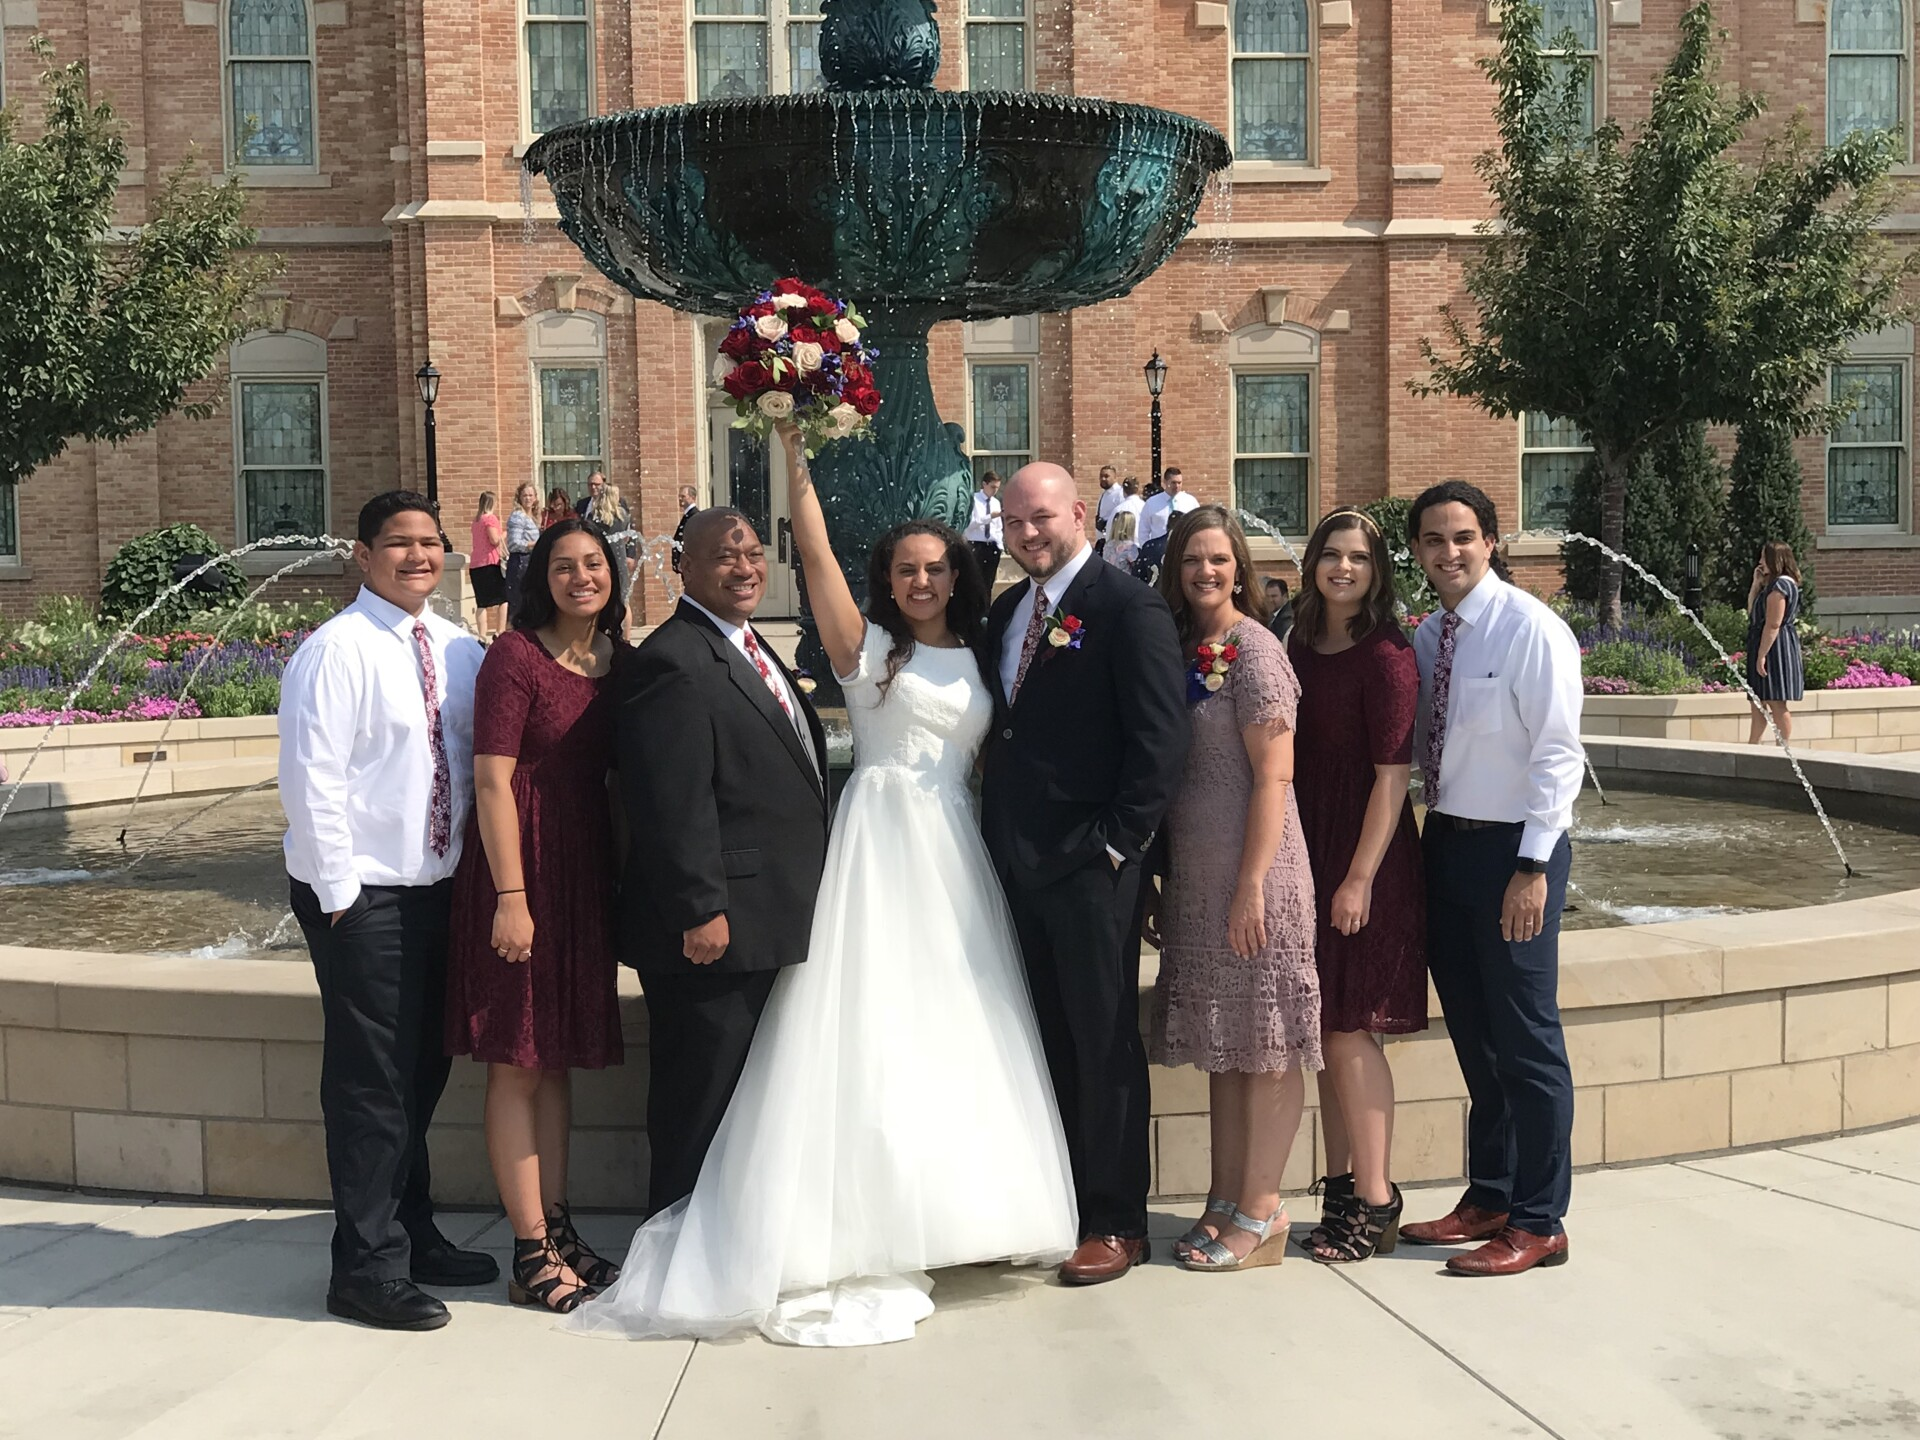 Photos: Big Budah's blog: Reconnecting with family, celebrating marriage and continuing healthtransformations